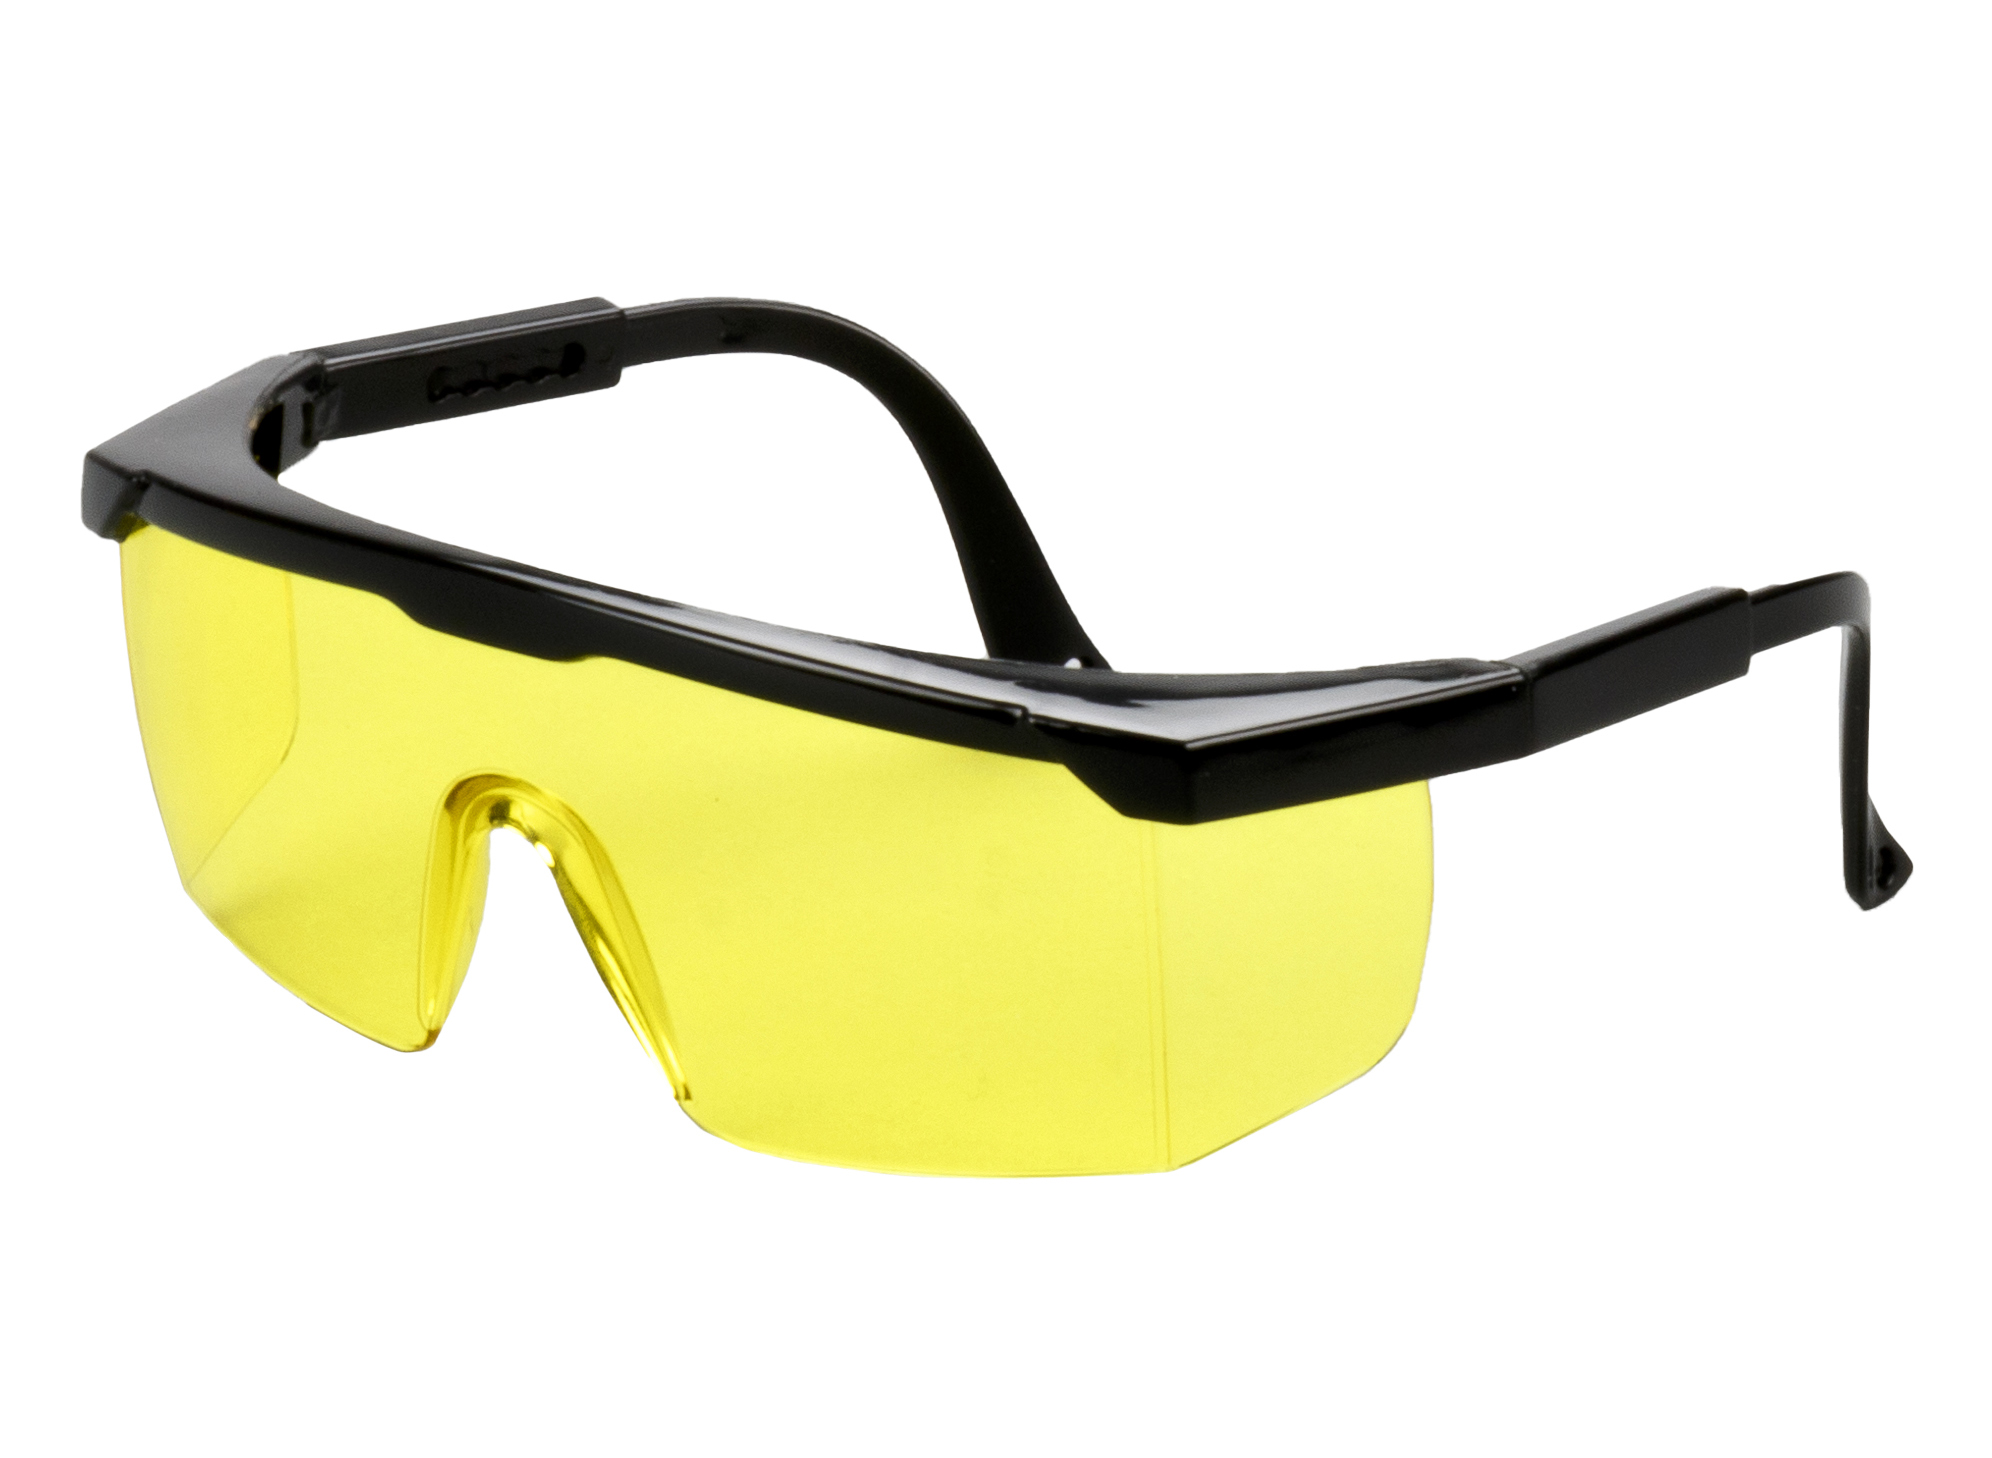 97fbc4a8b15 Why use a UV protection safety glasses